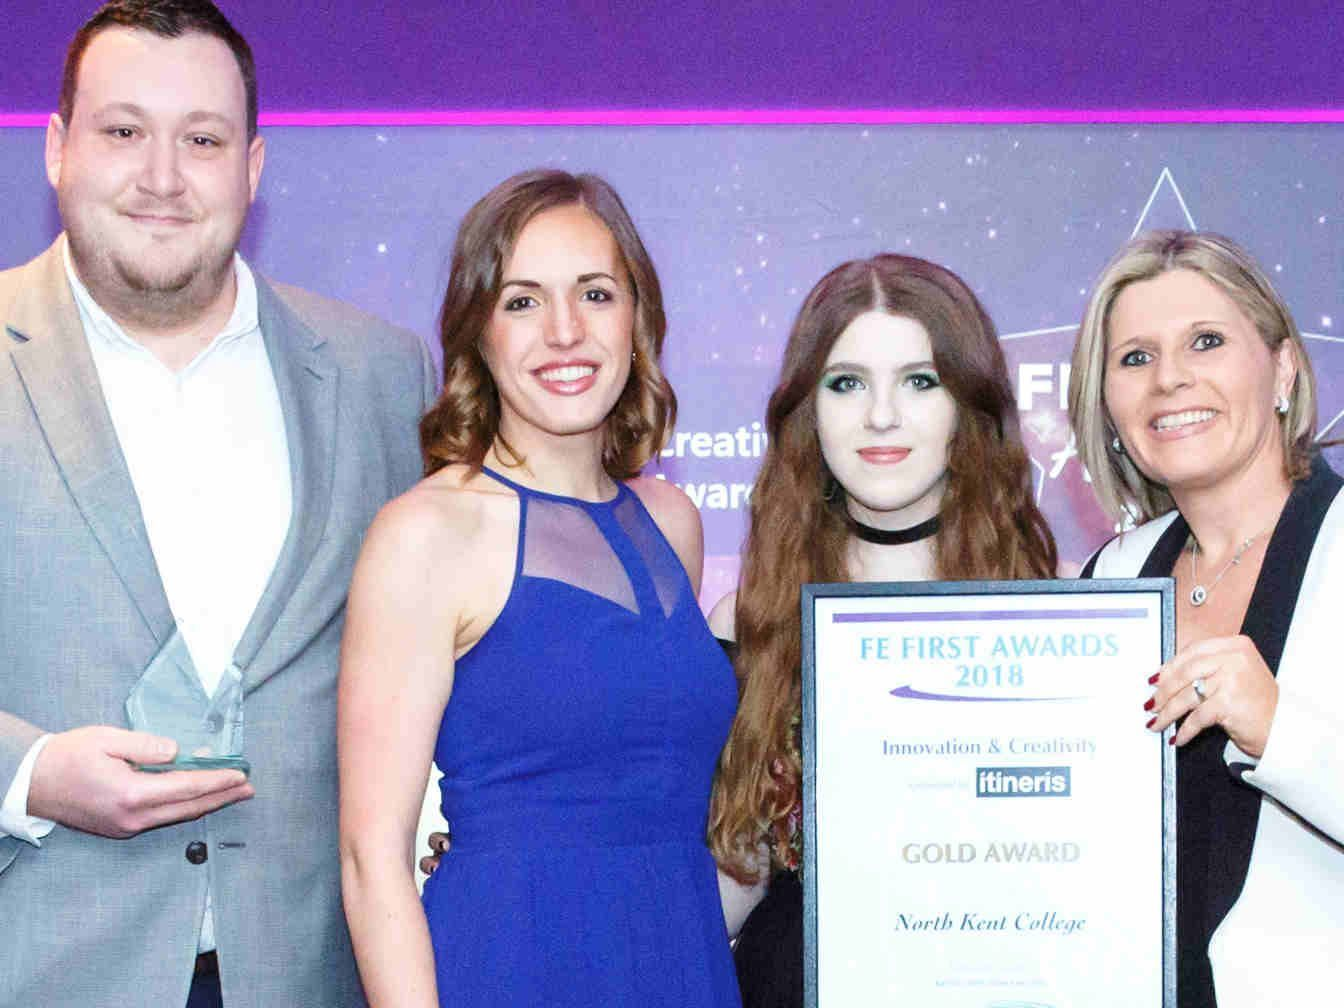 FE First Awards 2018, College Marketing Network, North Kent College